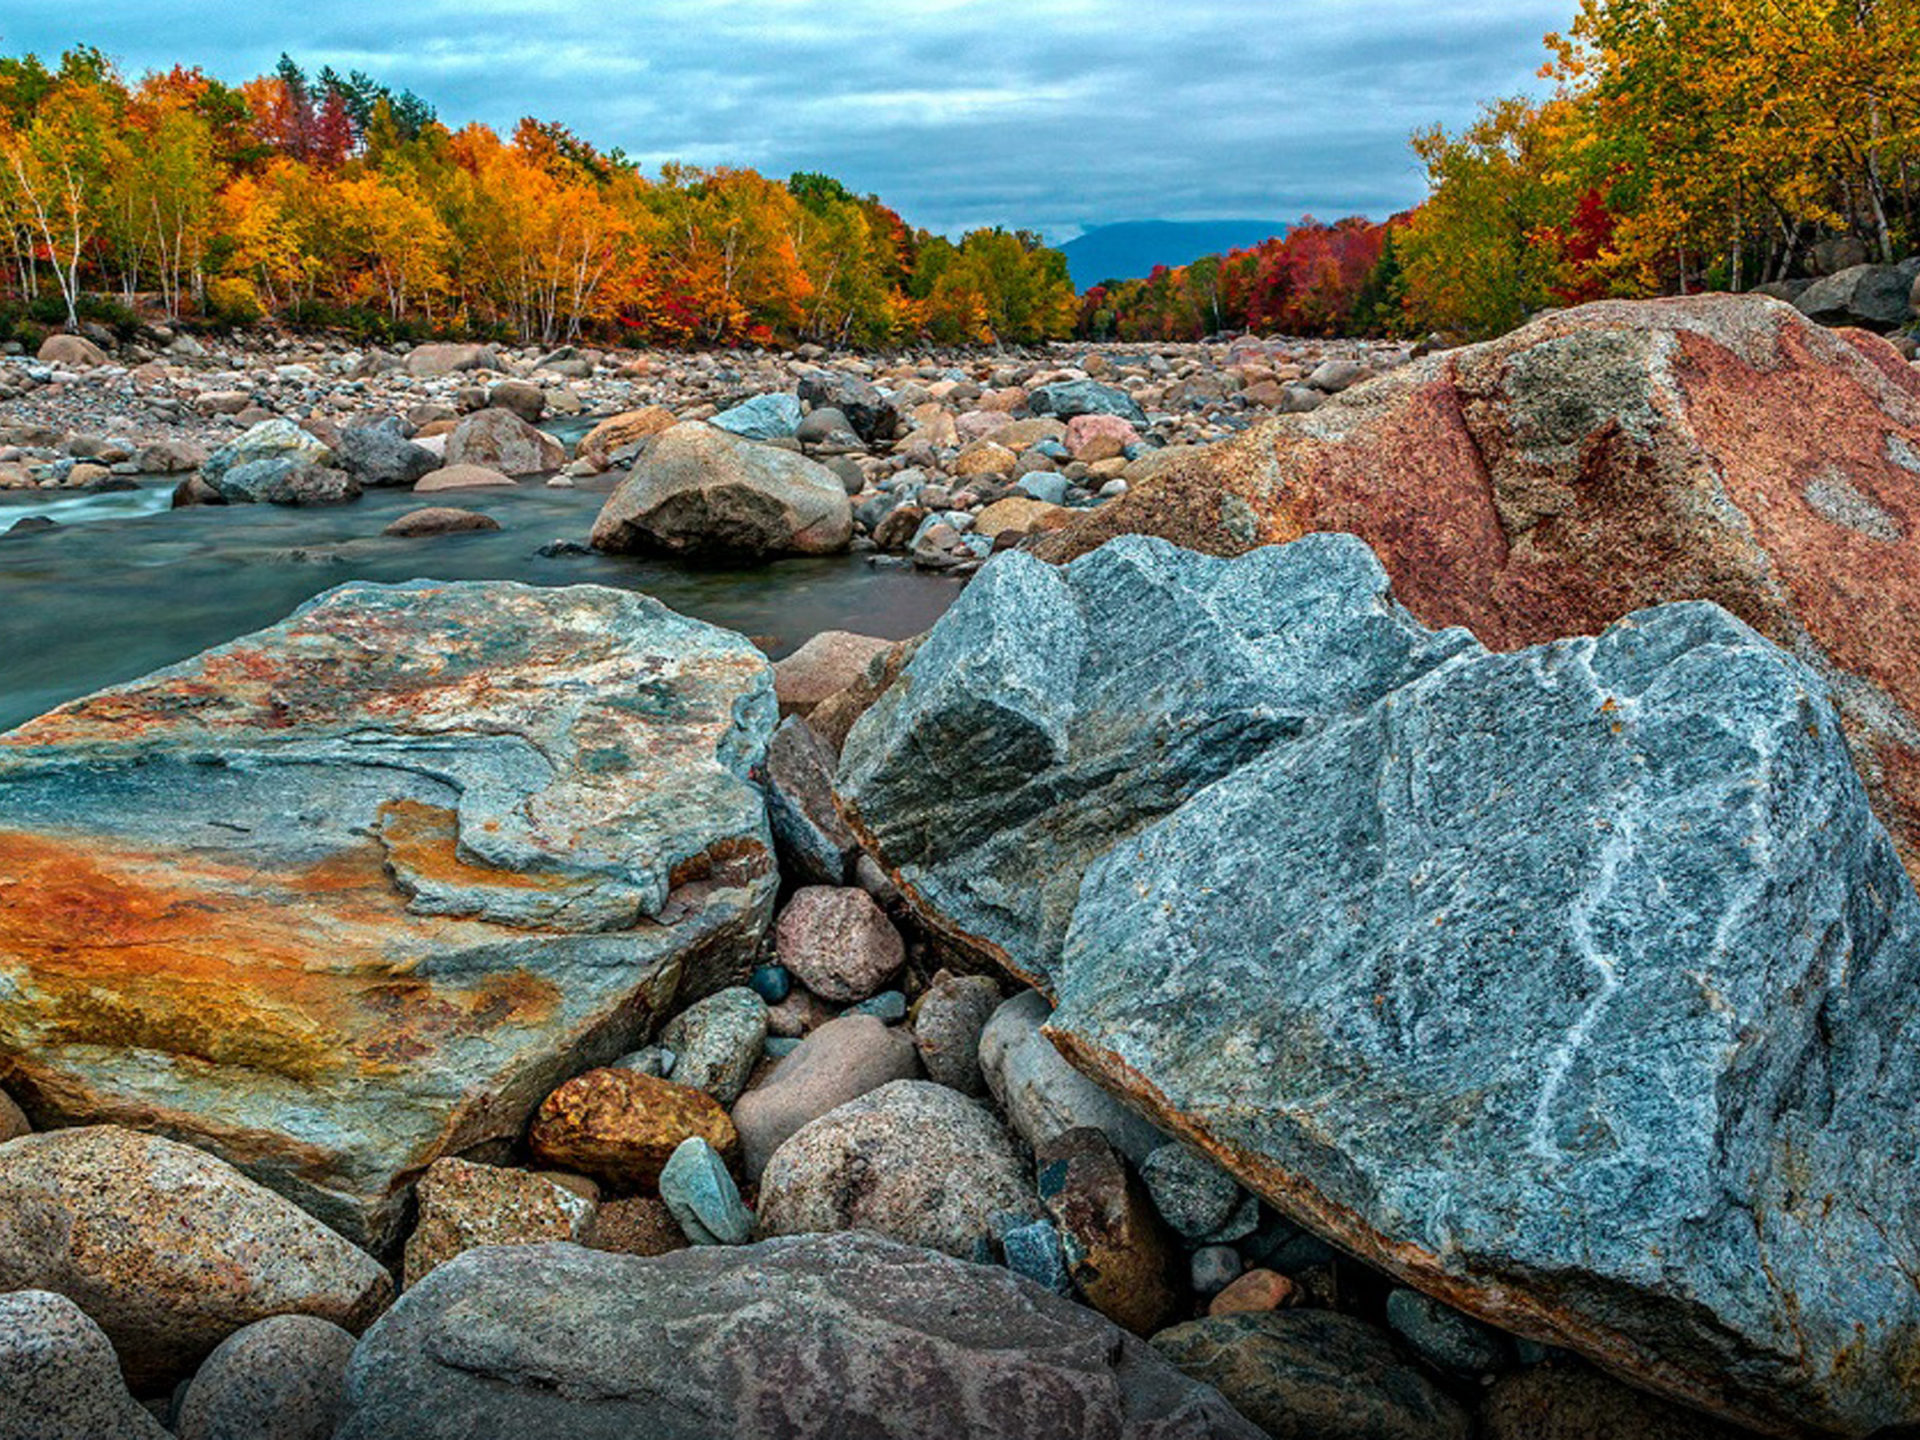 Christmas Scene Wallpaper For Iphone Autumn In The New Hampshire River Pemigewuasset Desktop